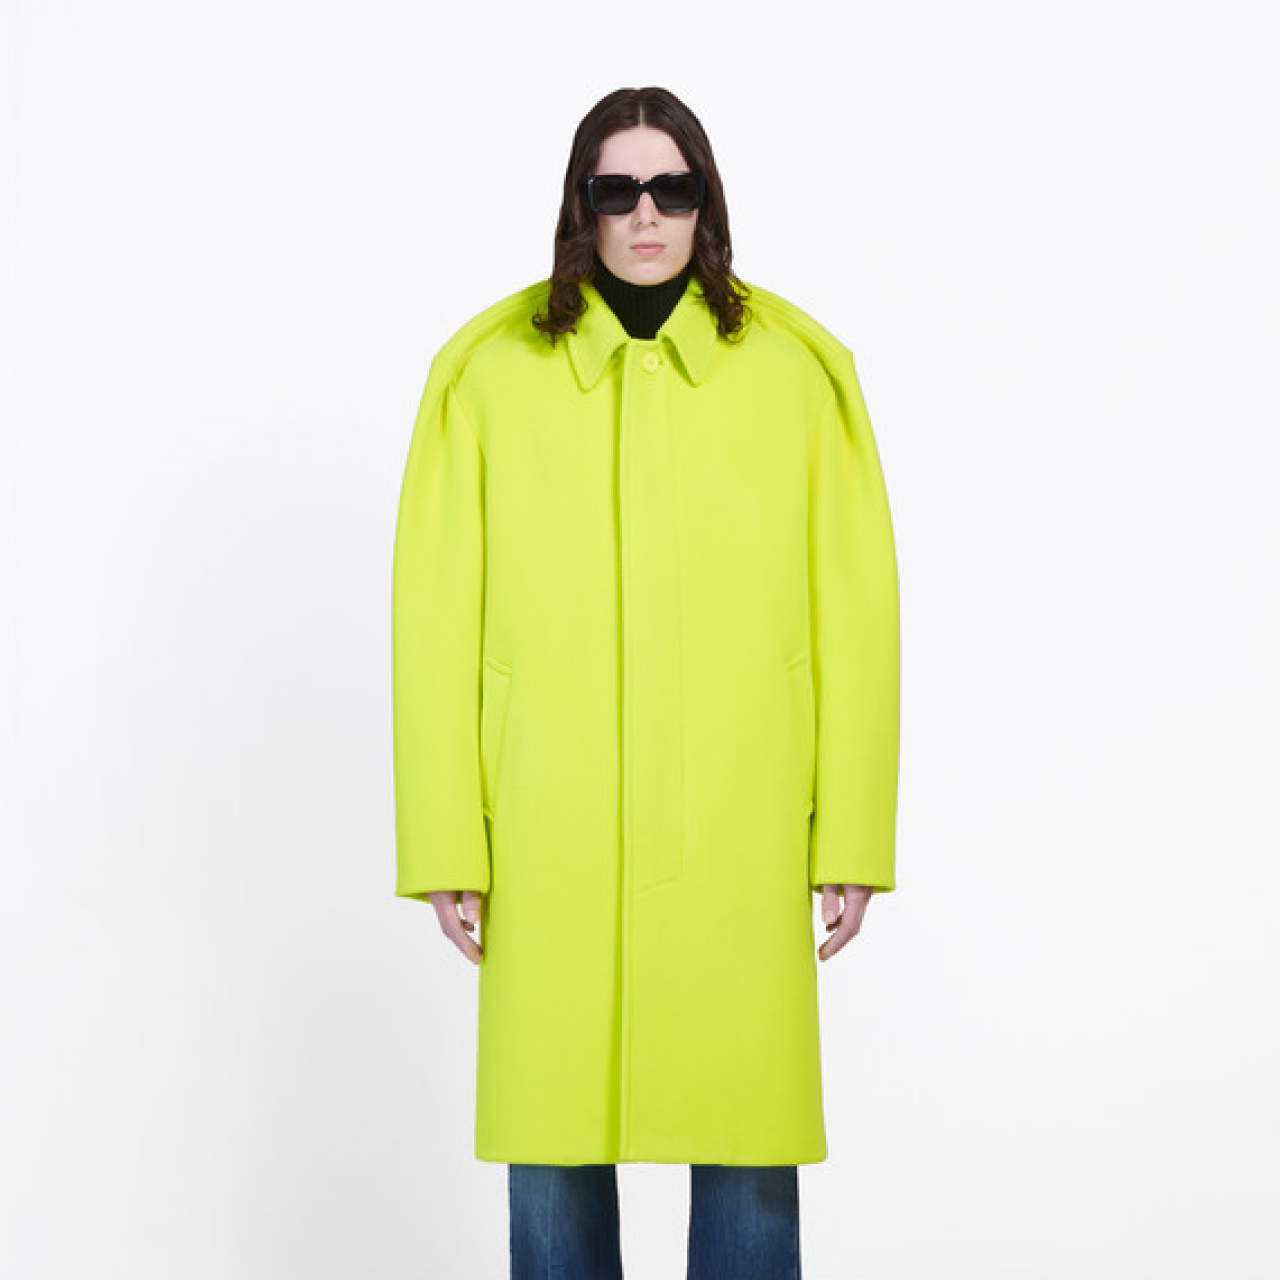 Pinched Shoulders at Balenciaga | The Cutting Class. Balenciaga tailoring AW19, Fluo Yellow Car Coat.